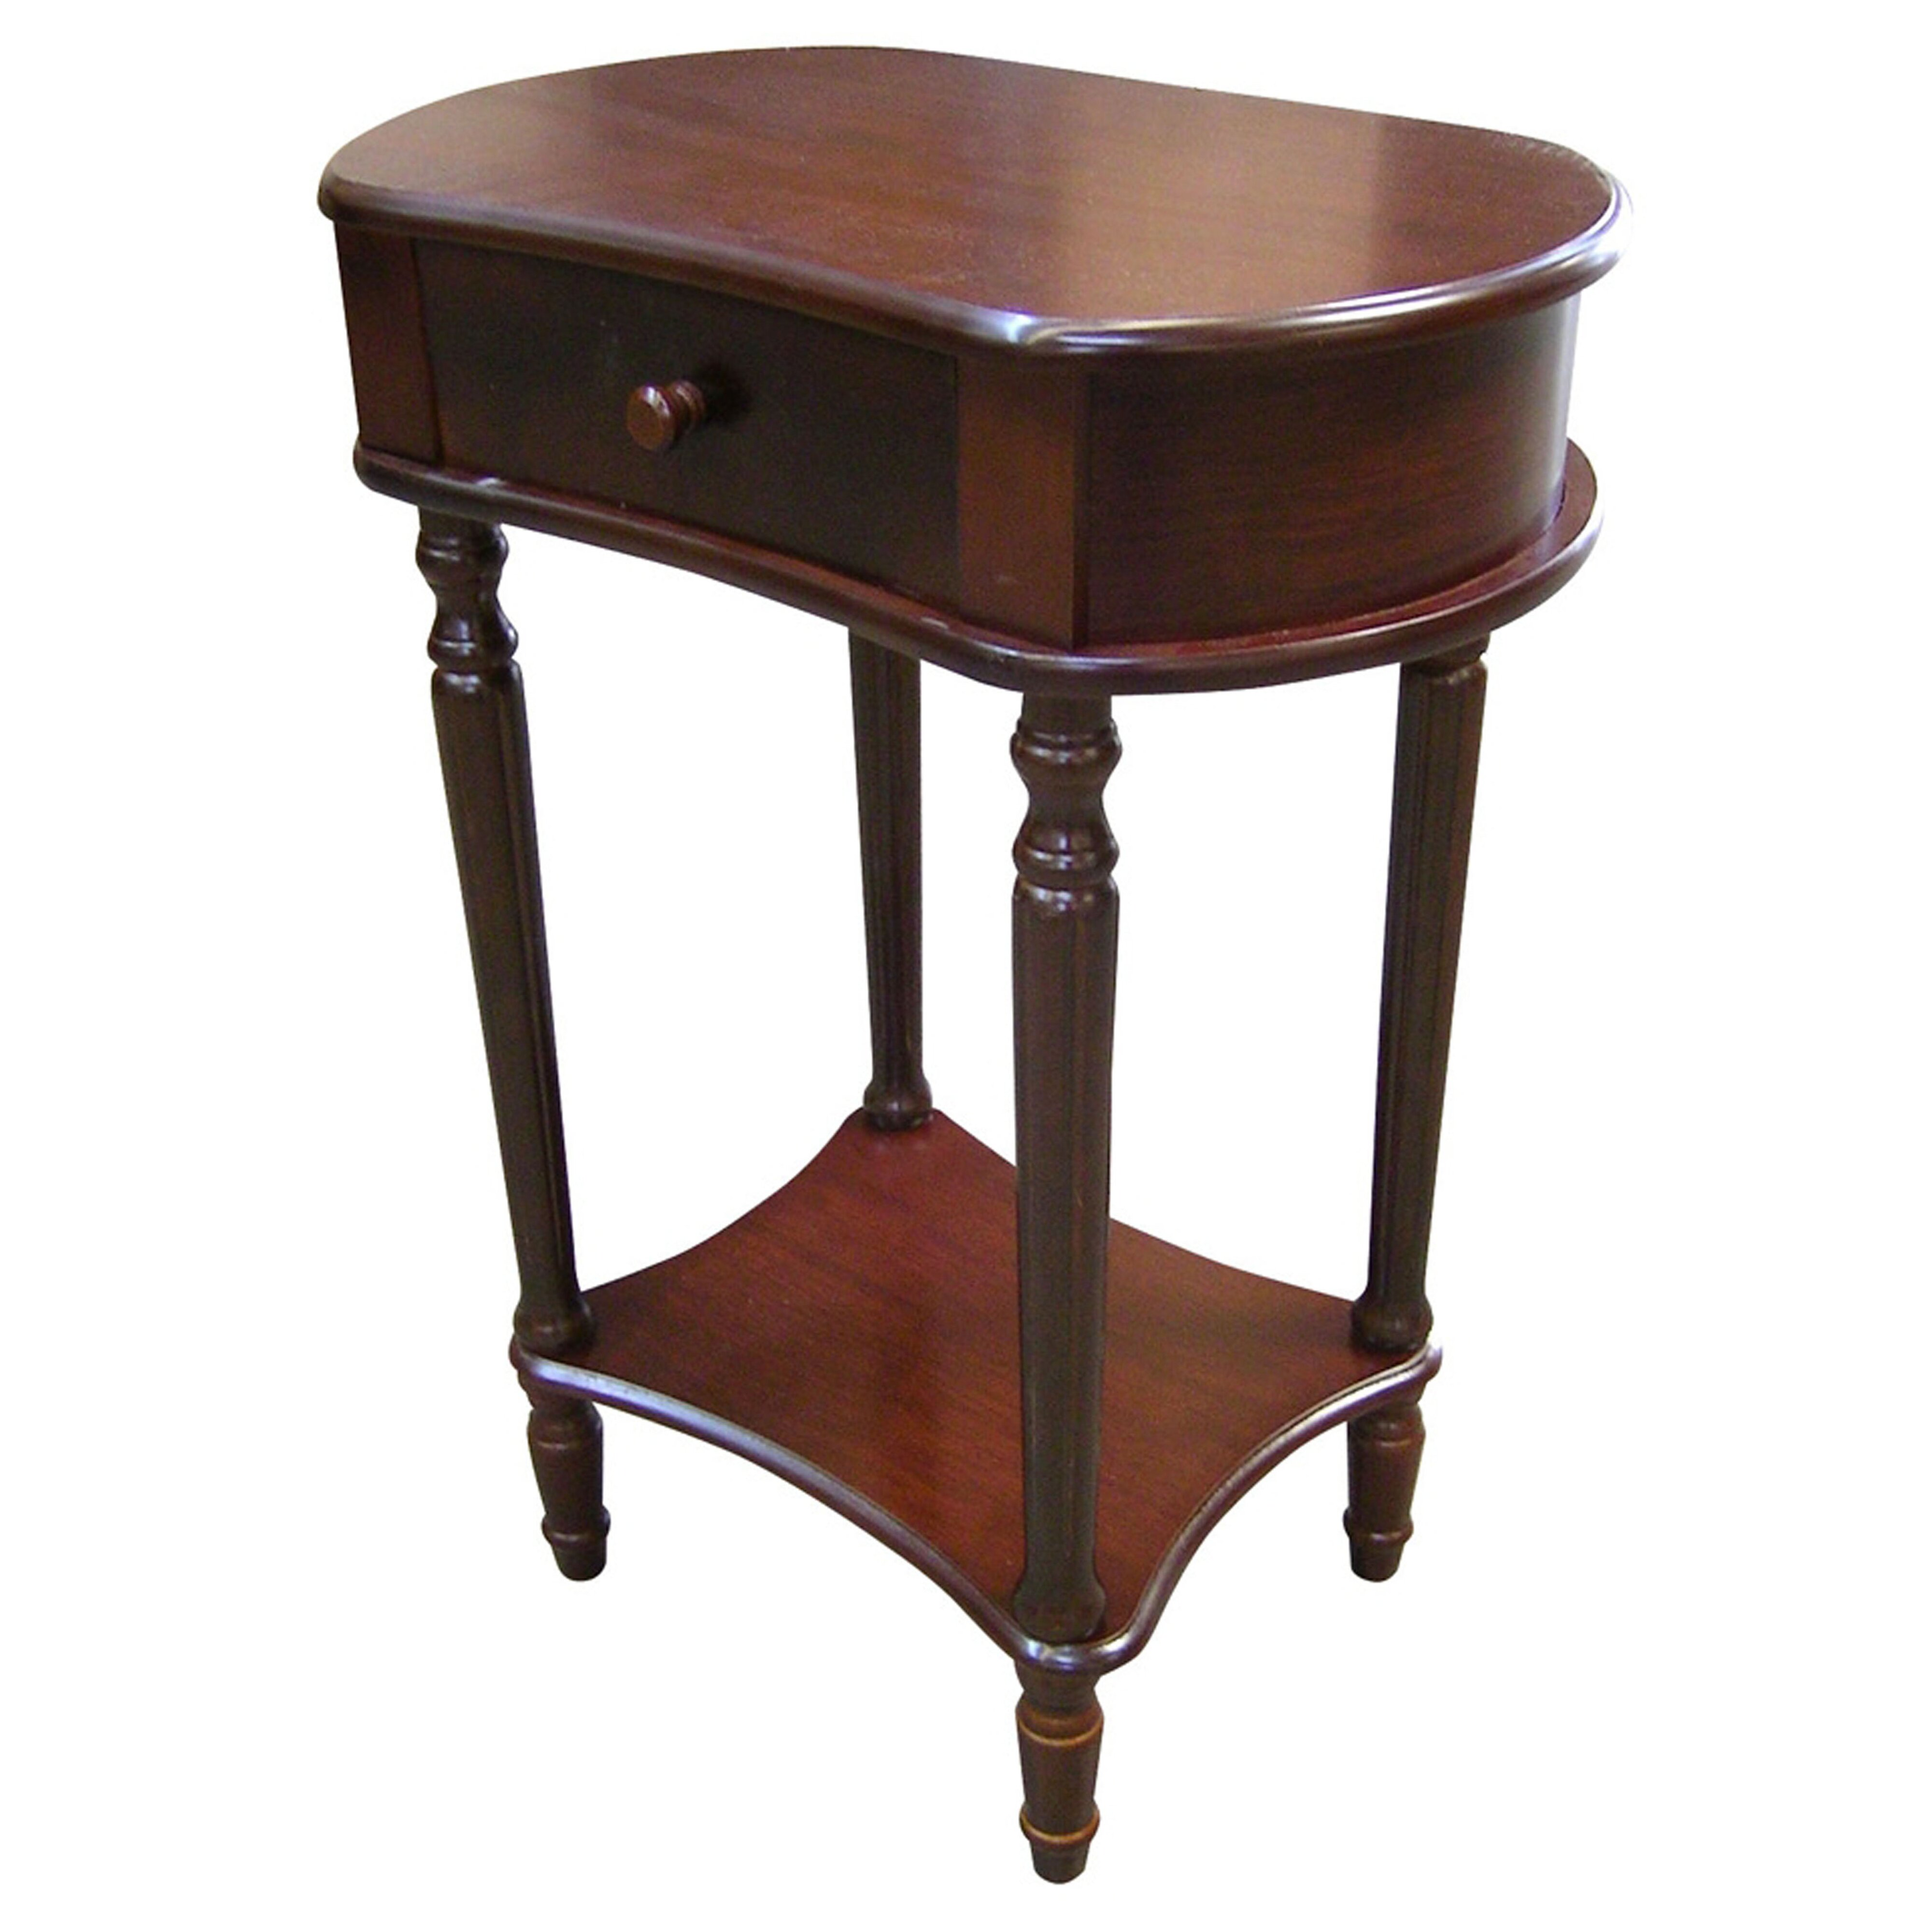 Ore furniture end table reviews wayfair for I furniture reviews